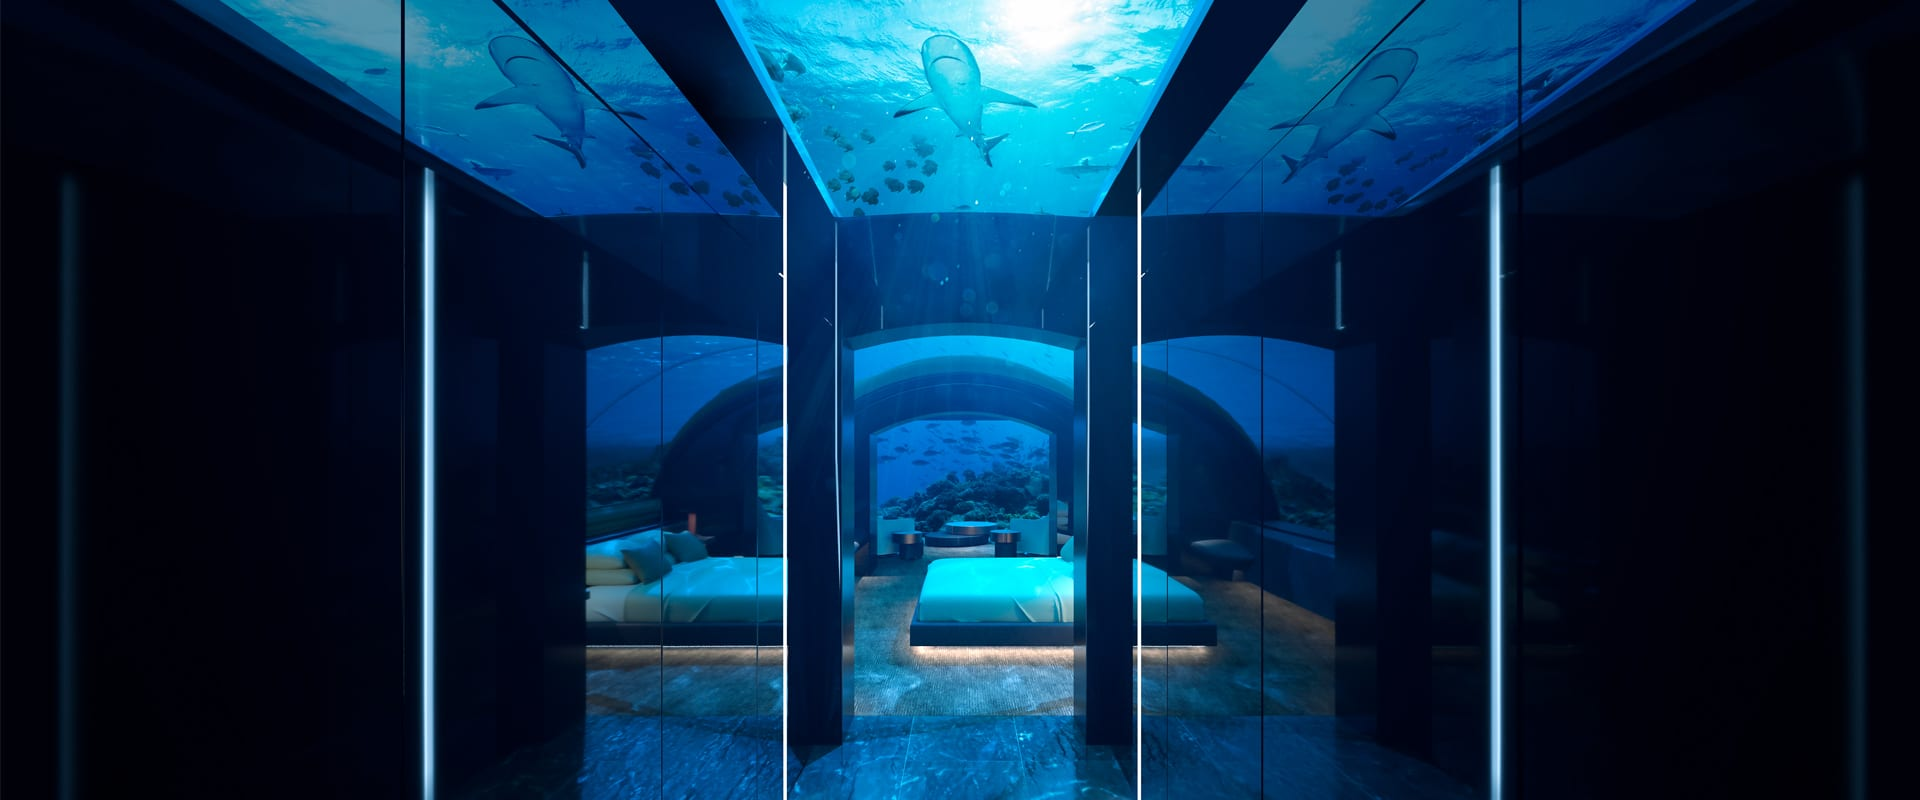 Maldives under water suite